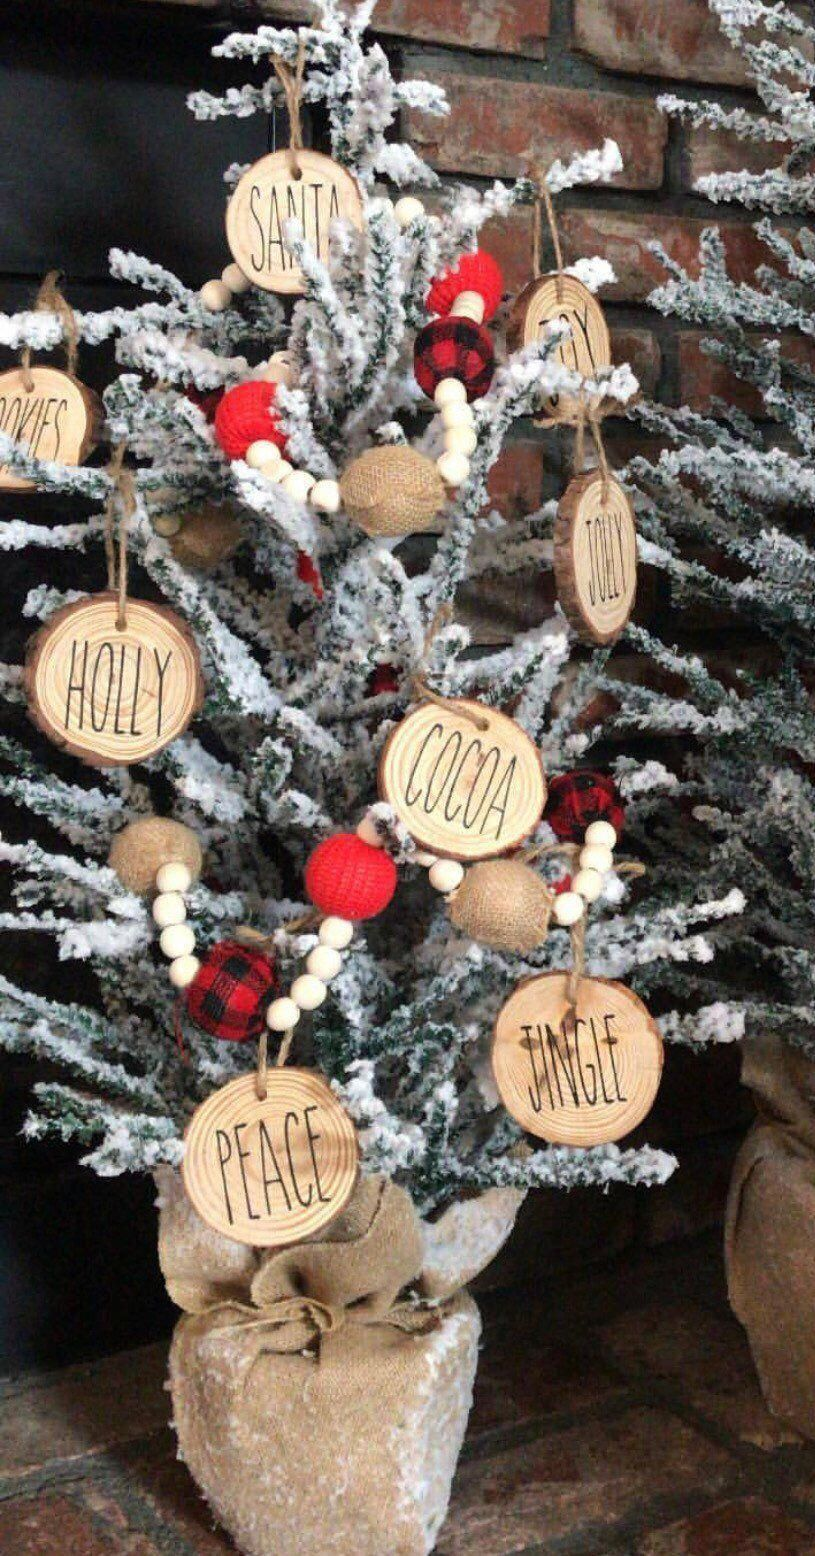 Rae dunn inspired christmas ornaments, gift, wood slice ornaments -   19 farmhouse christmas tree decorations diy ideas